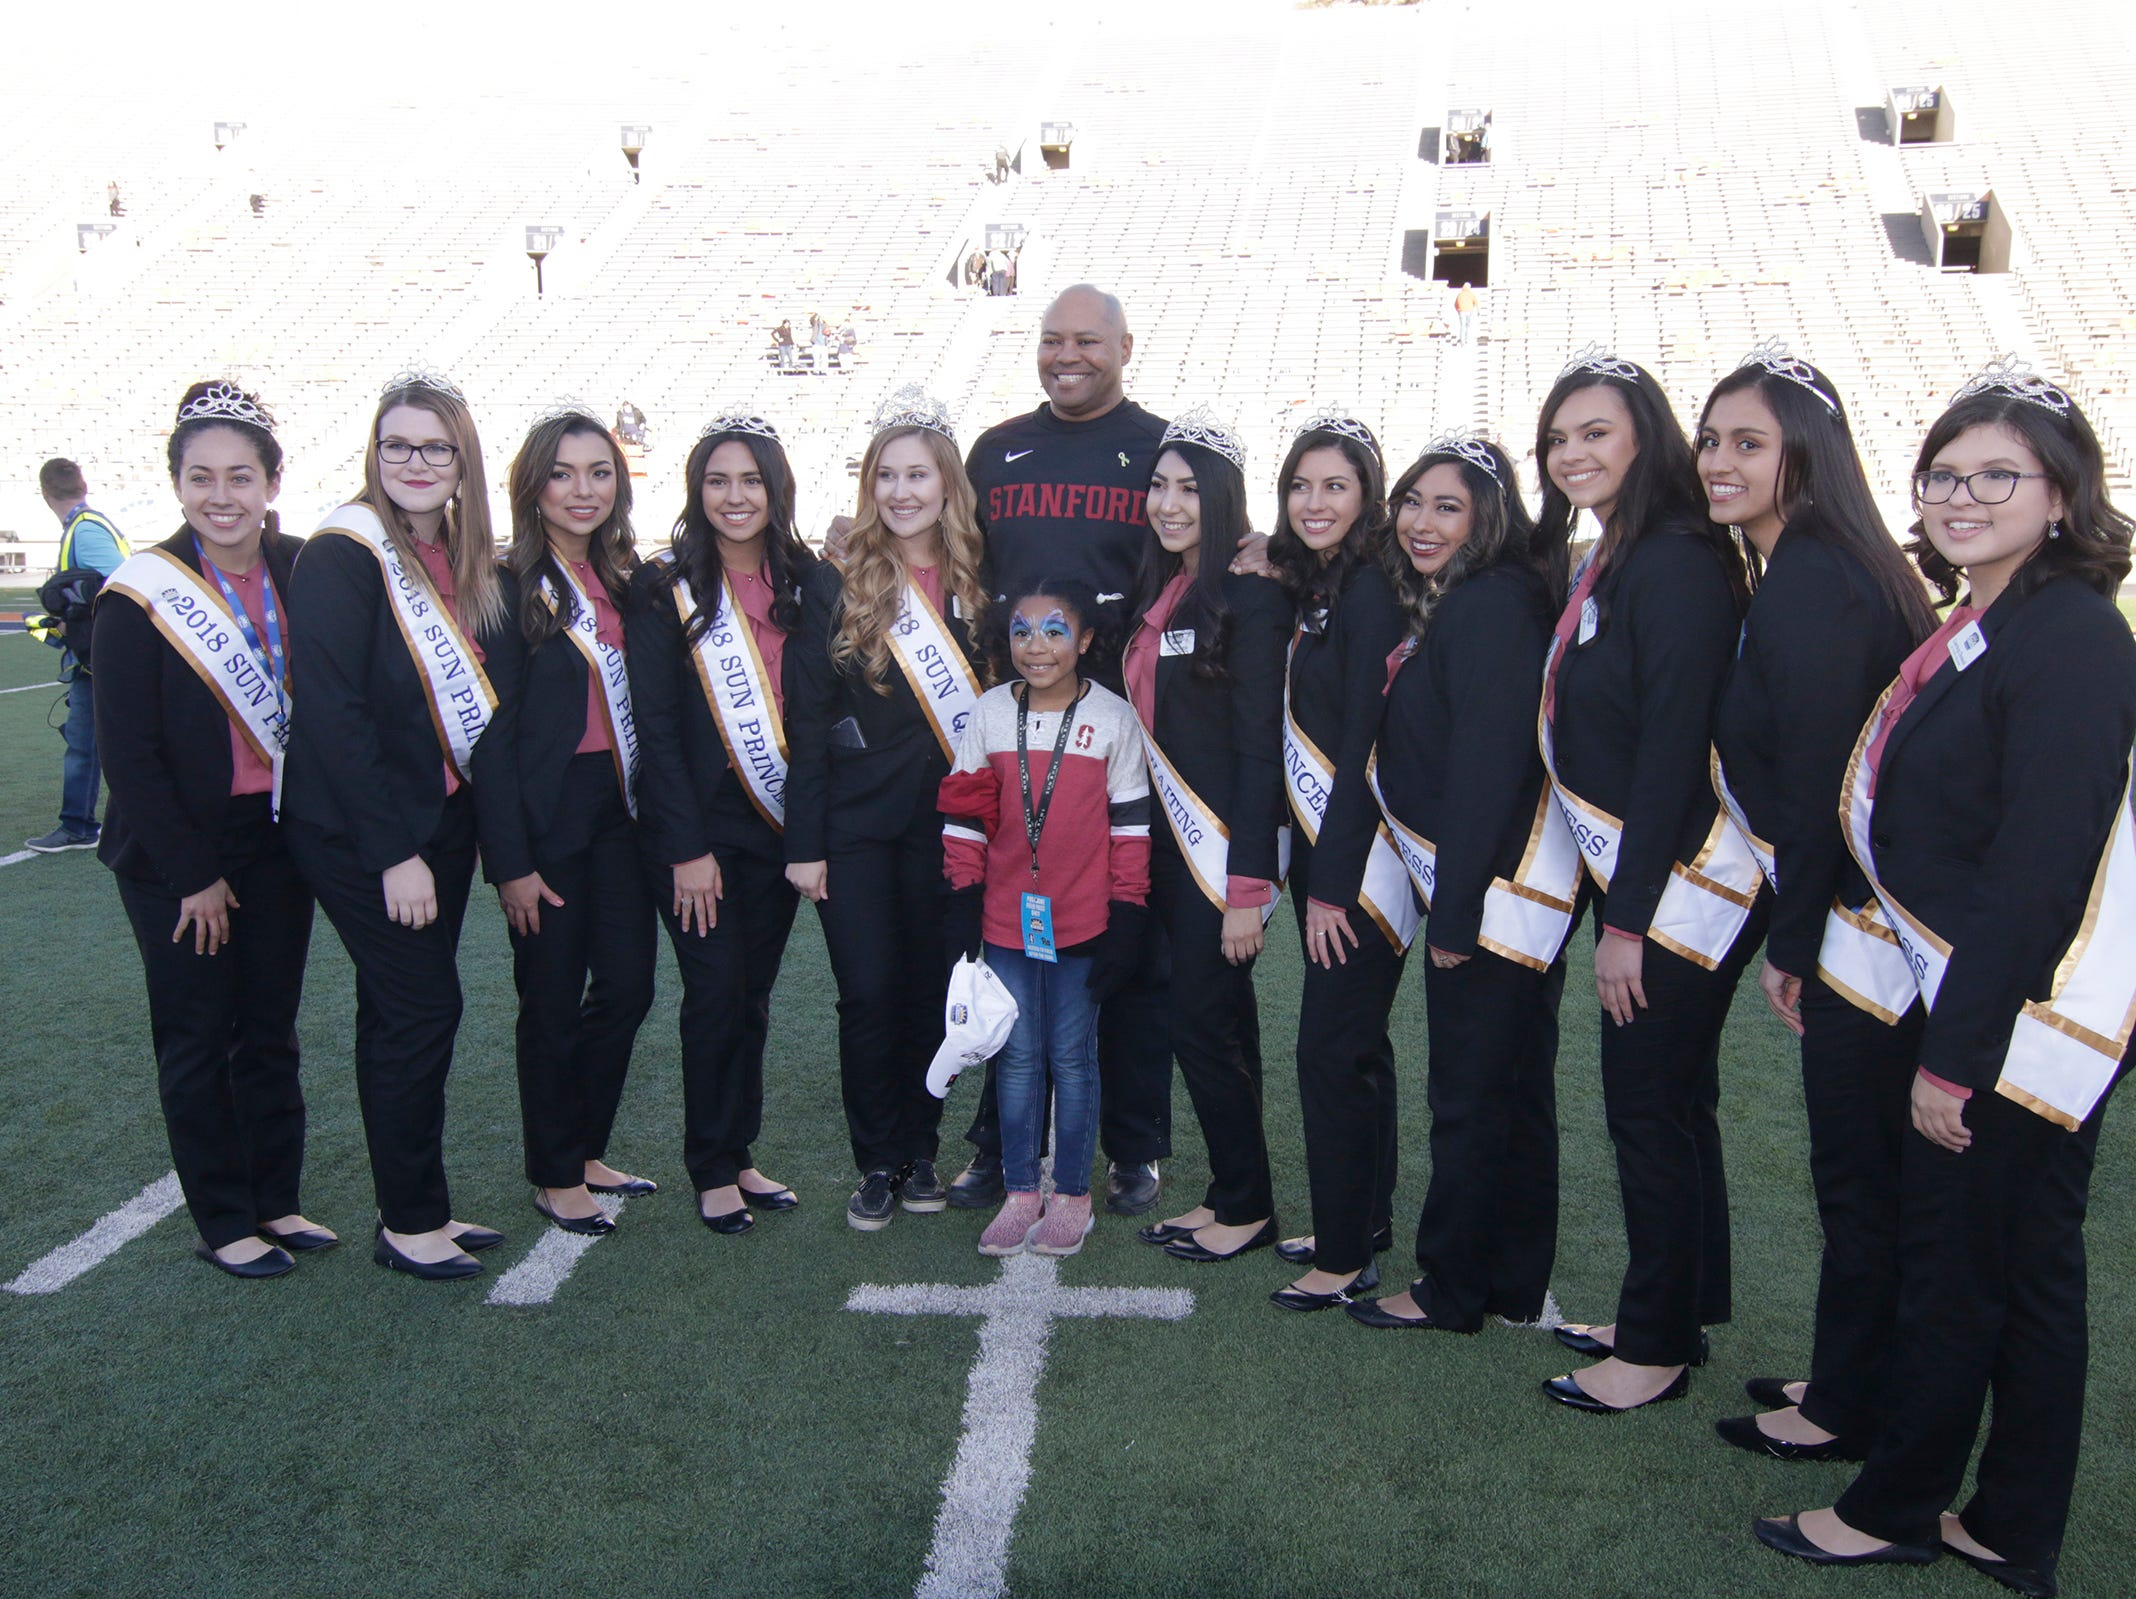 Stanford head coach David Shaw poses for a photo with his daughter and the Sun Bowl court. Shaw led Cardinal team over the Pitt Panthers for a come from behind win 14-13 to take home the championship trophy from  the 85th Hyundai Sun Bowl game.